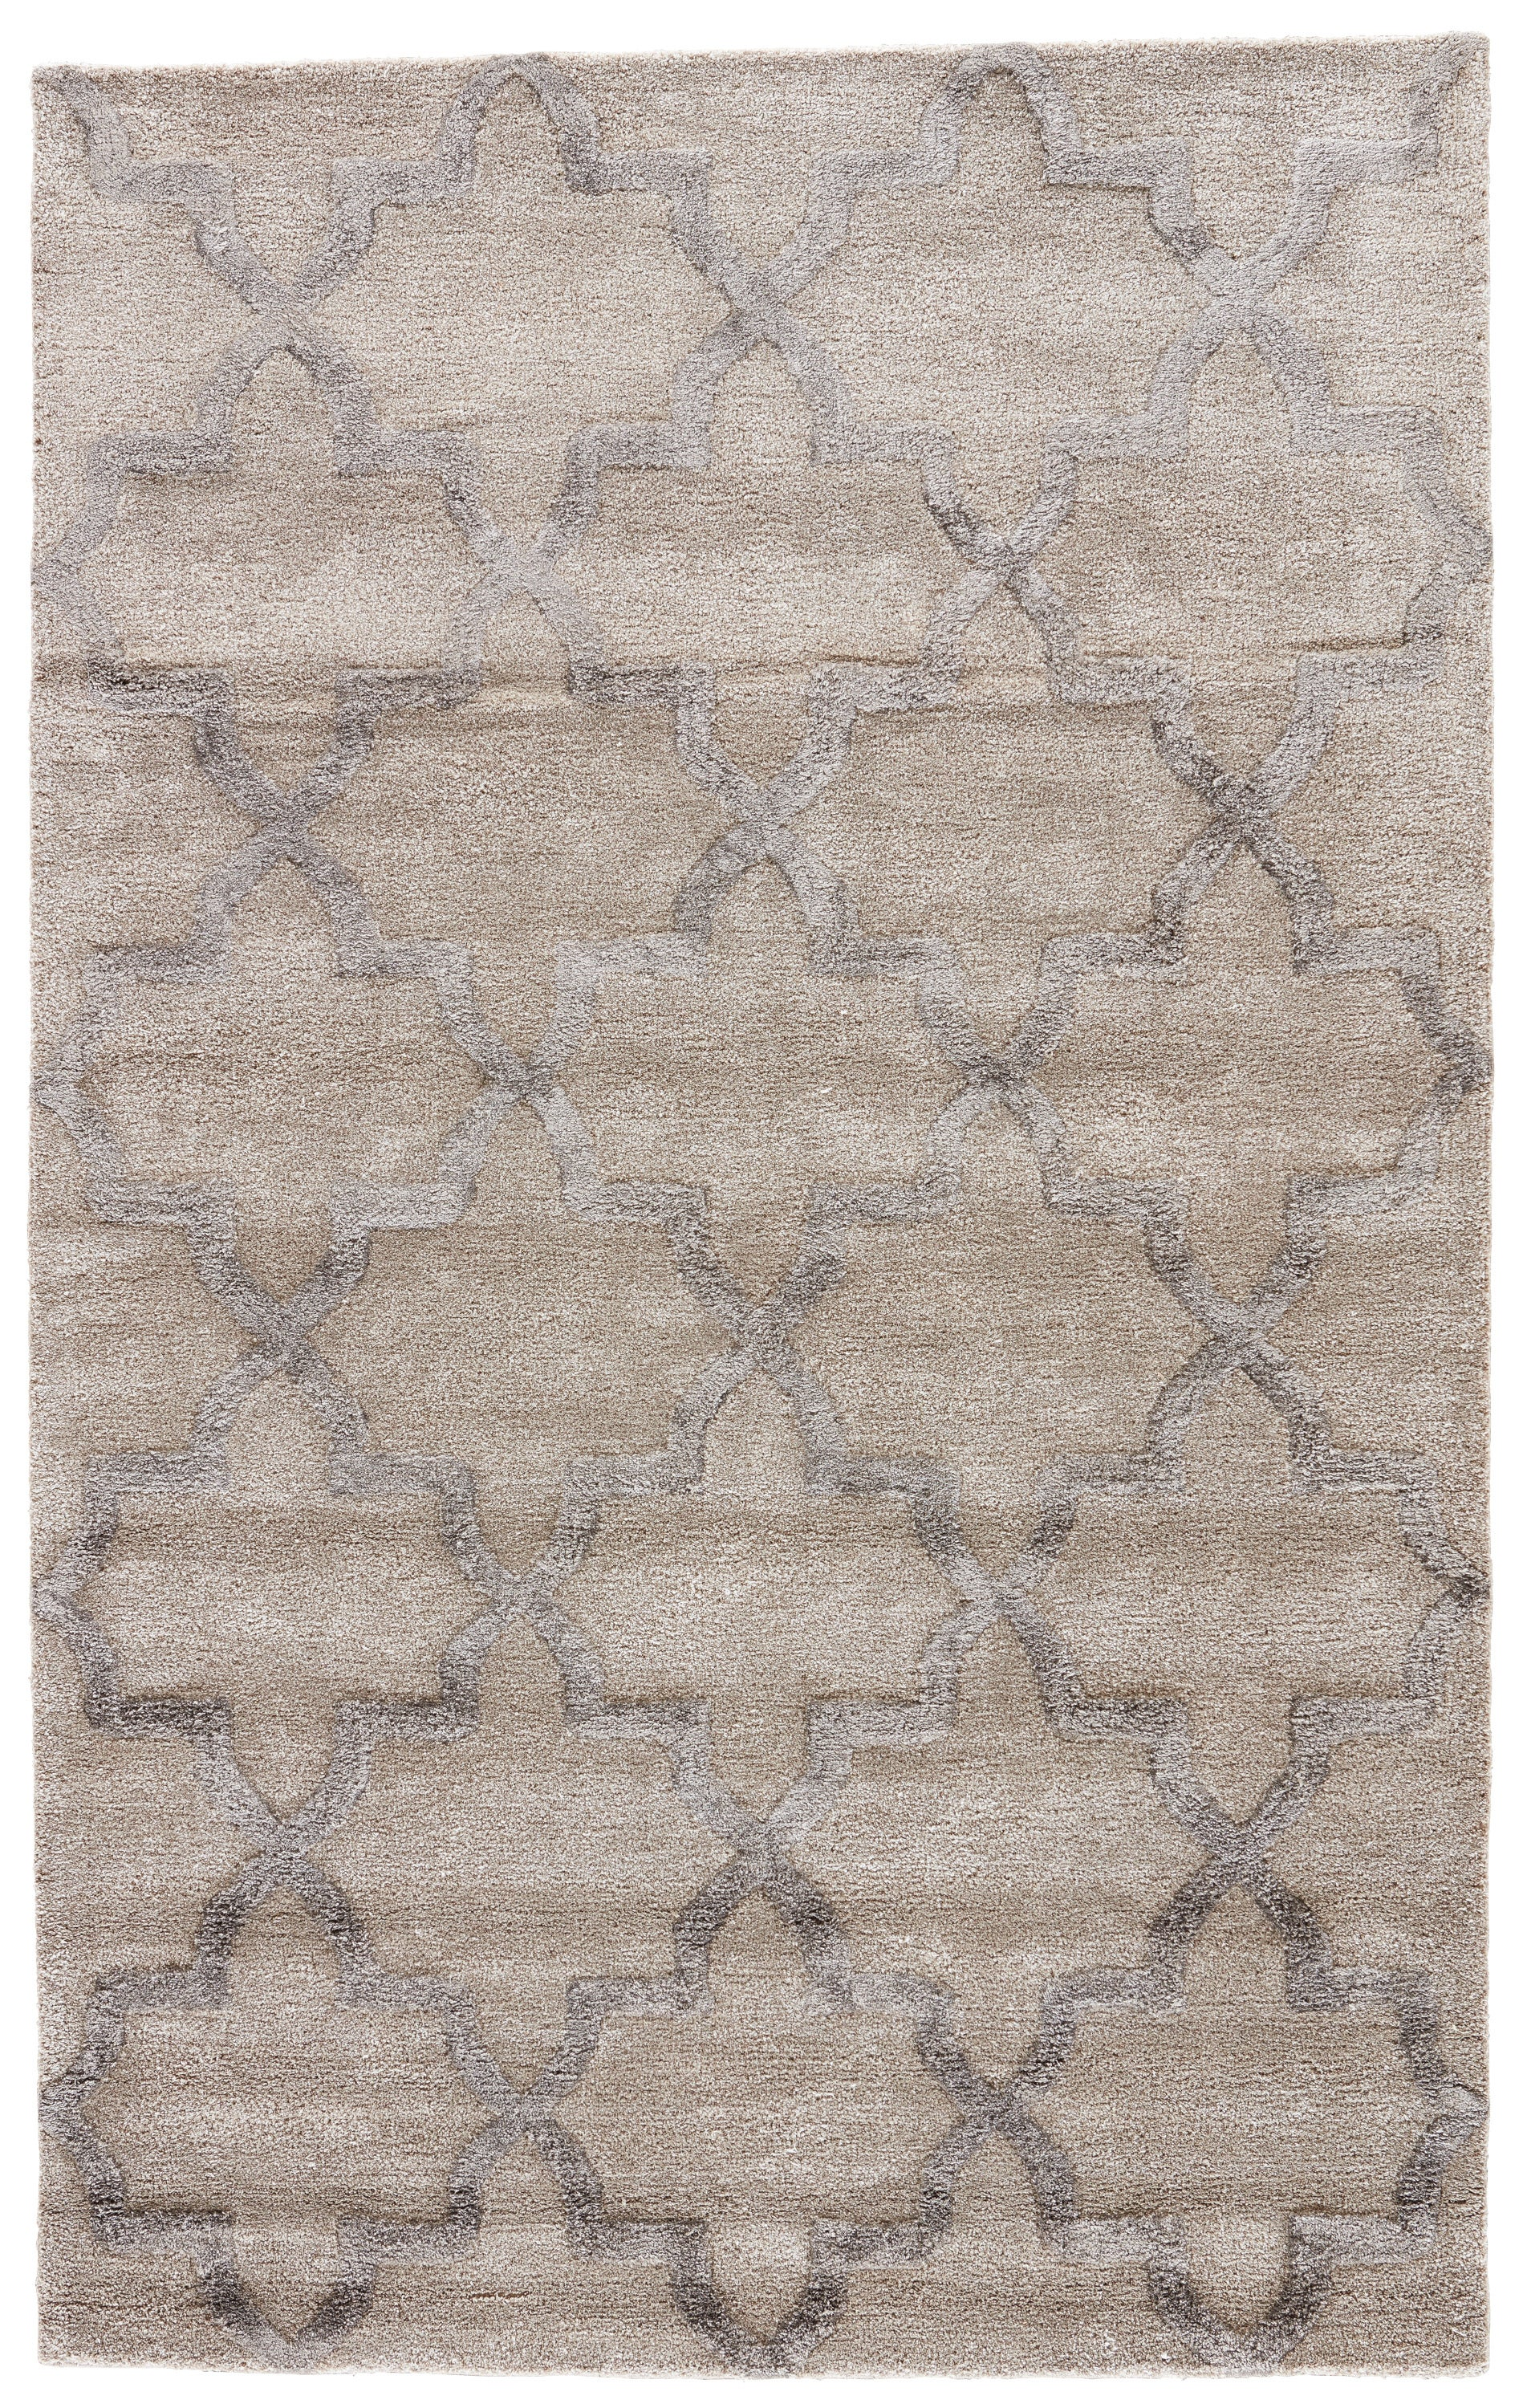 Rectangle Lightbrown Trellis Hand Tufted Blends Persian & Moroccan recommended for Bedroom, Bathroom, Dining Room, Office, Hallway, Living Room